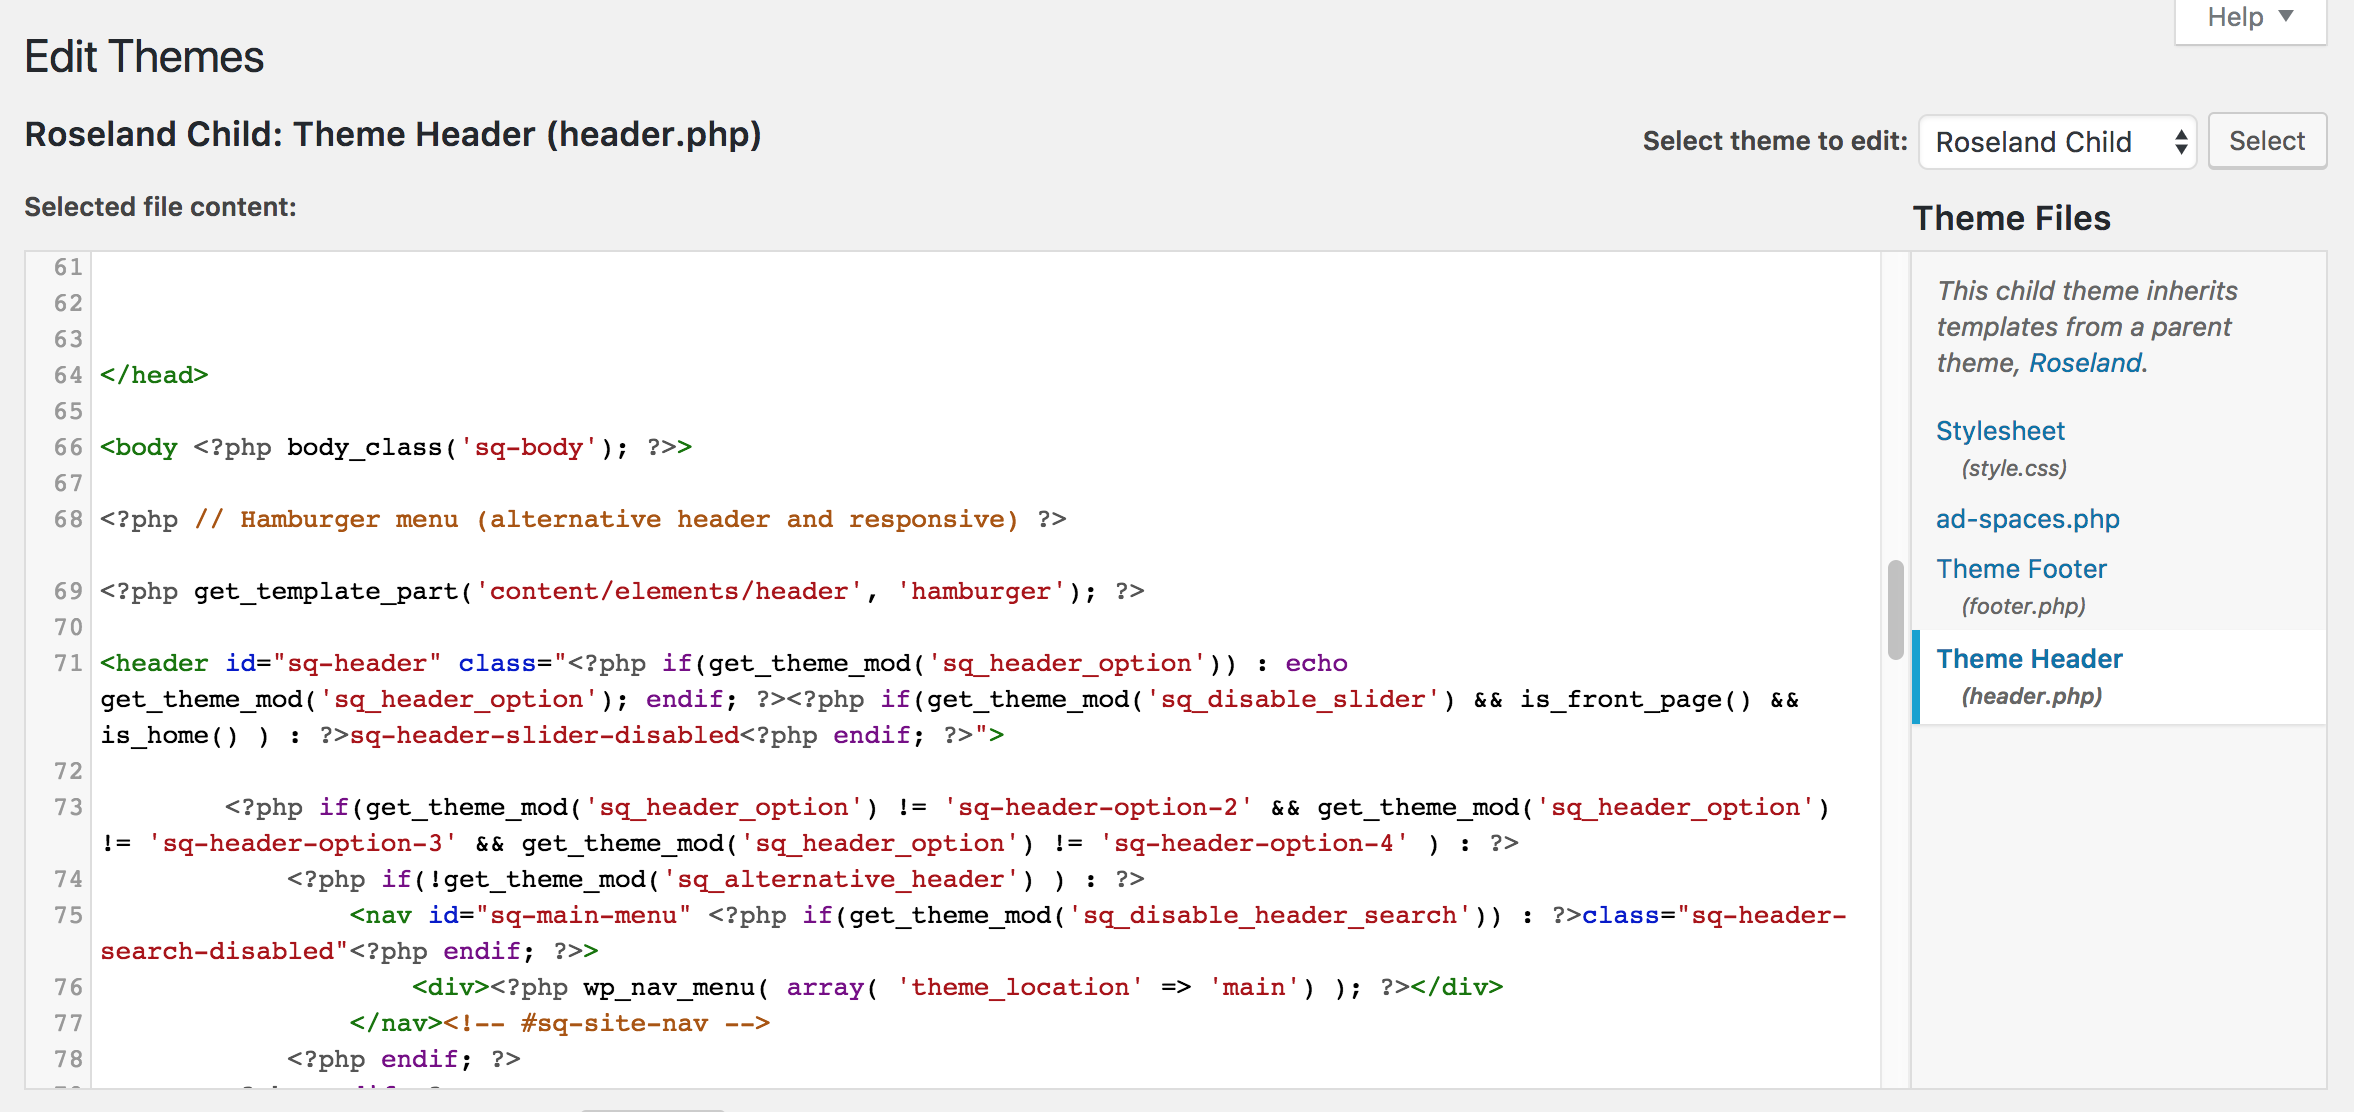 A picture of the header.php codebase